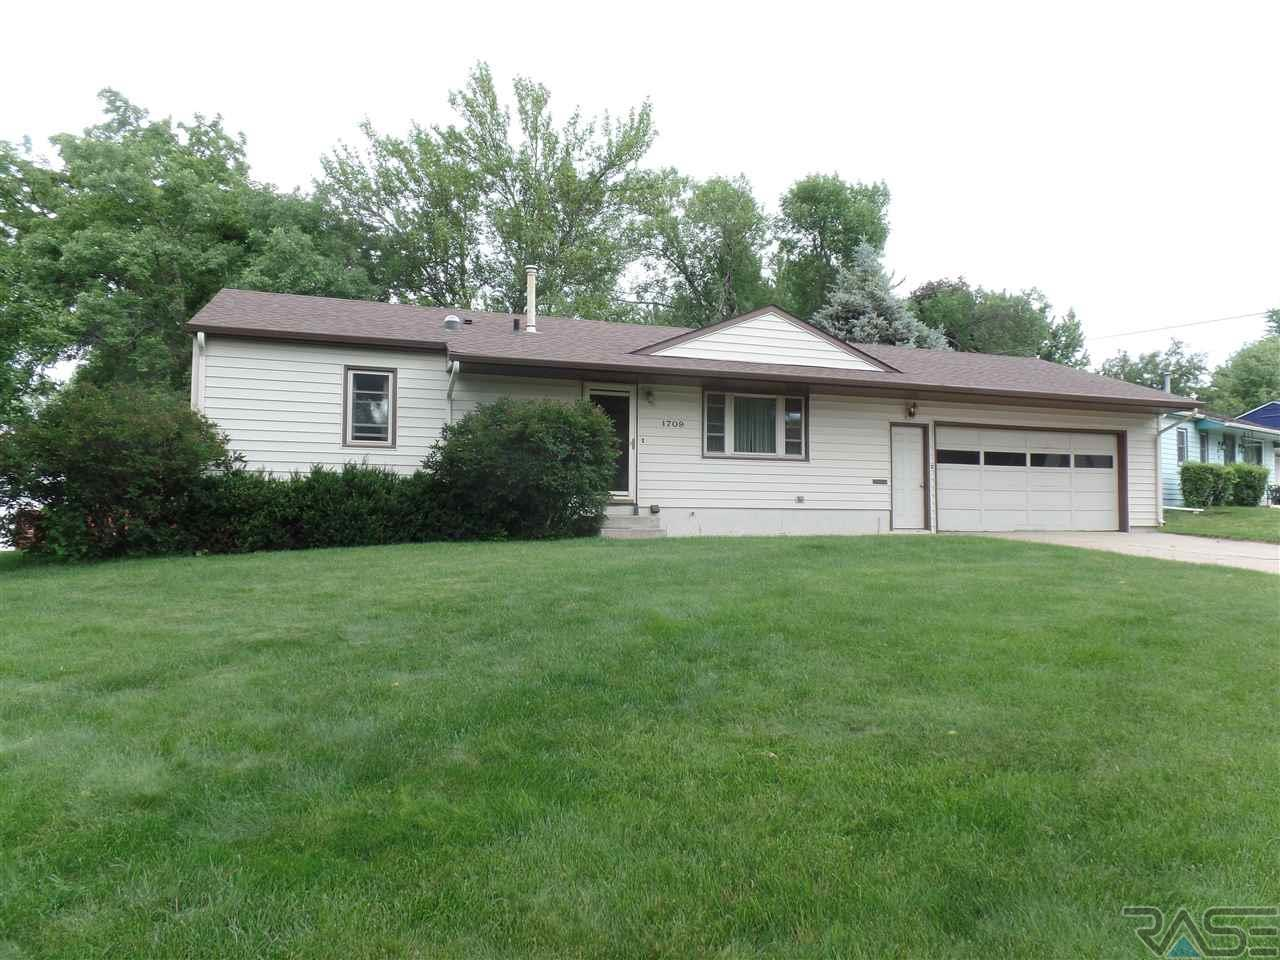 1709 S Comet Rd, Sioux Falls, SD 57103